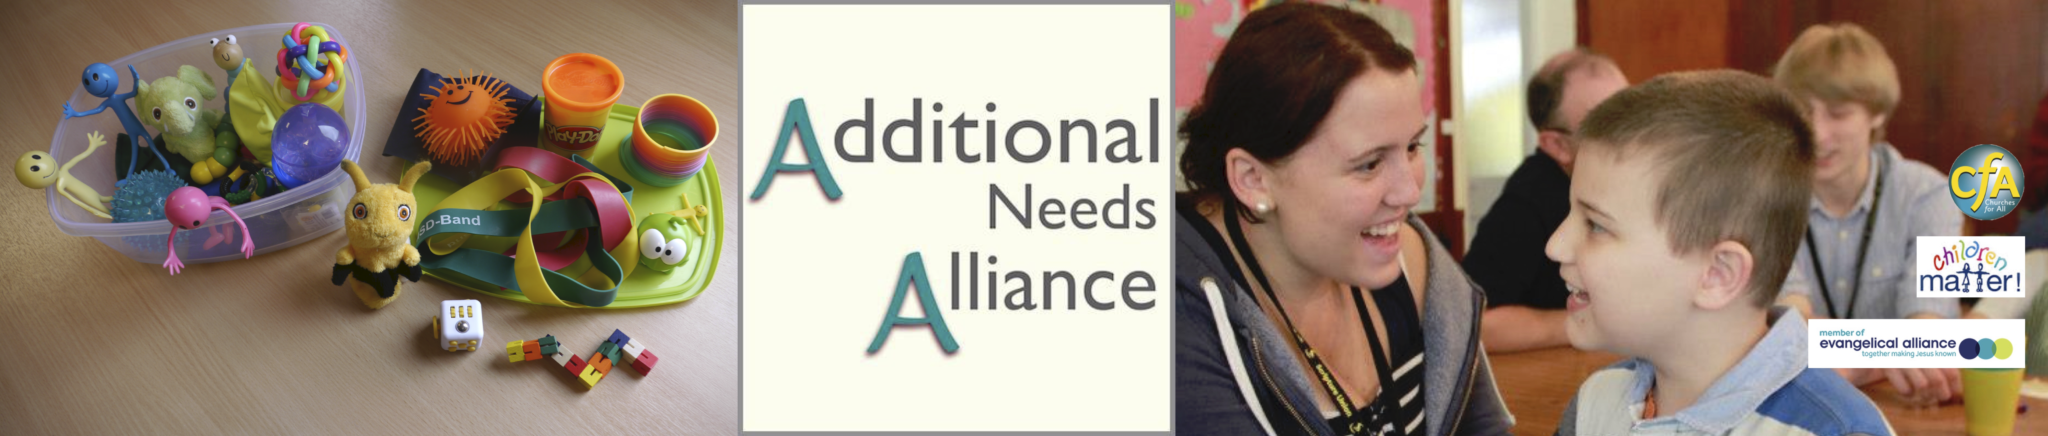 Additional Needs Alliance